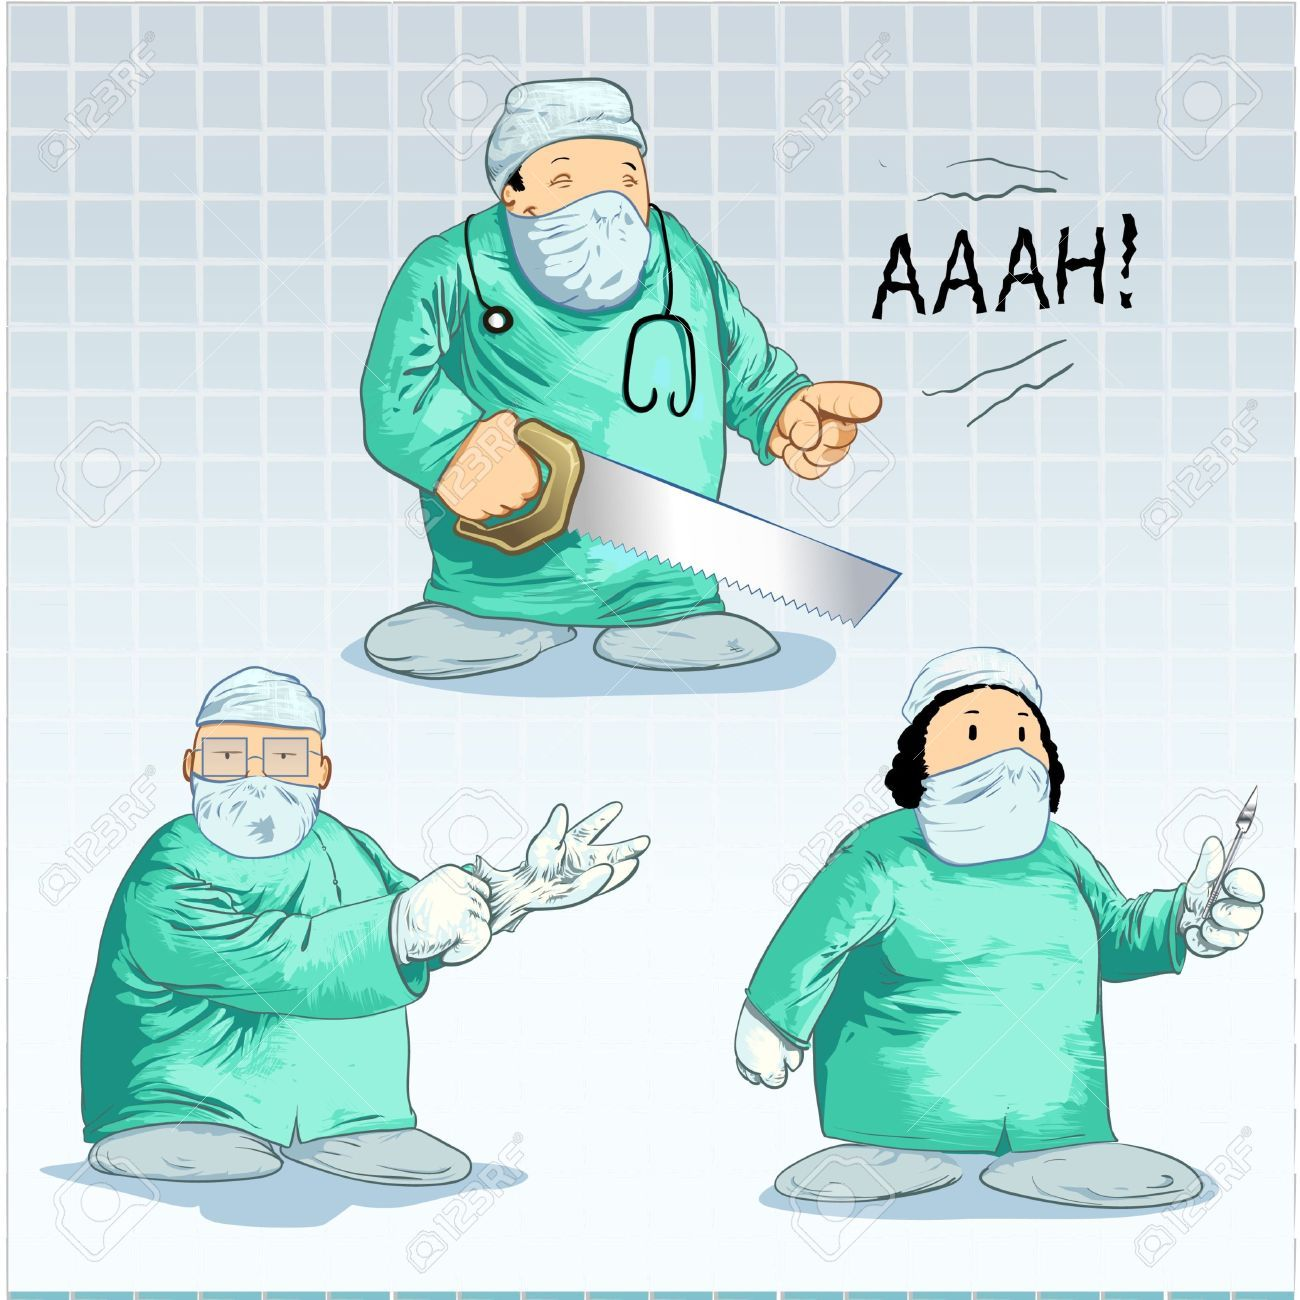 Surgical cartoons surgical cartoon funny surgical picture surgical - Surgeon Cartoon Buscar Con Google Cartoons